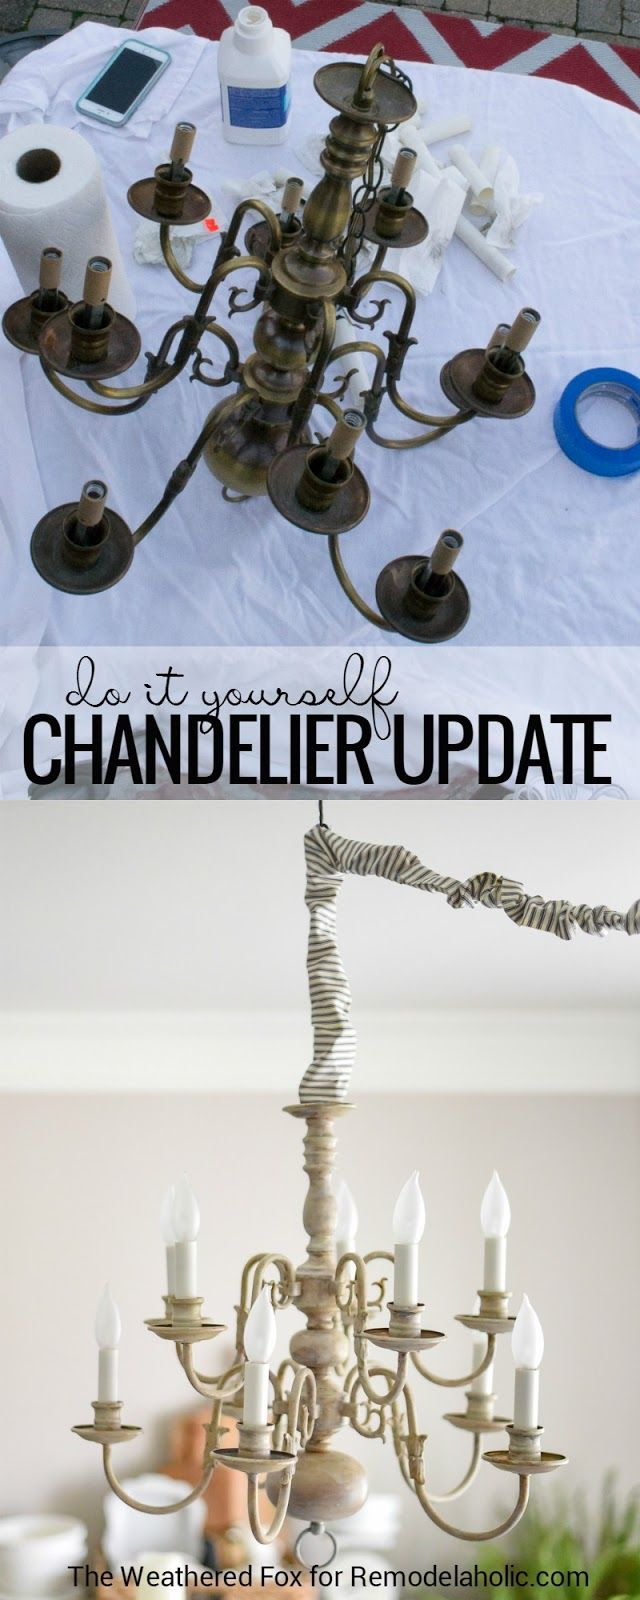 This DIY chandelier tutorial shows you how to paint and antique a thrift store brass light fixture and convert it from hardwired to a plug-in chandelier, plus how to make the swag fixture chic with a DIY cord cover